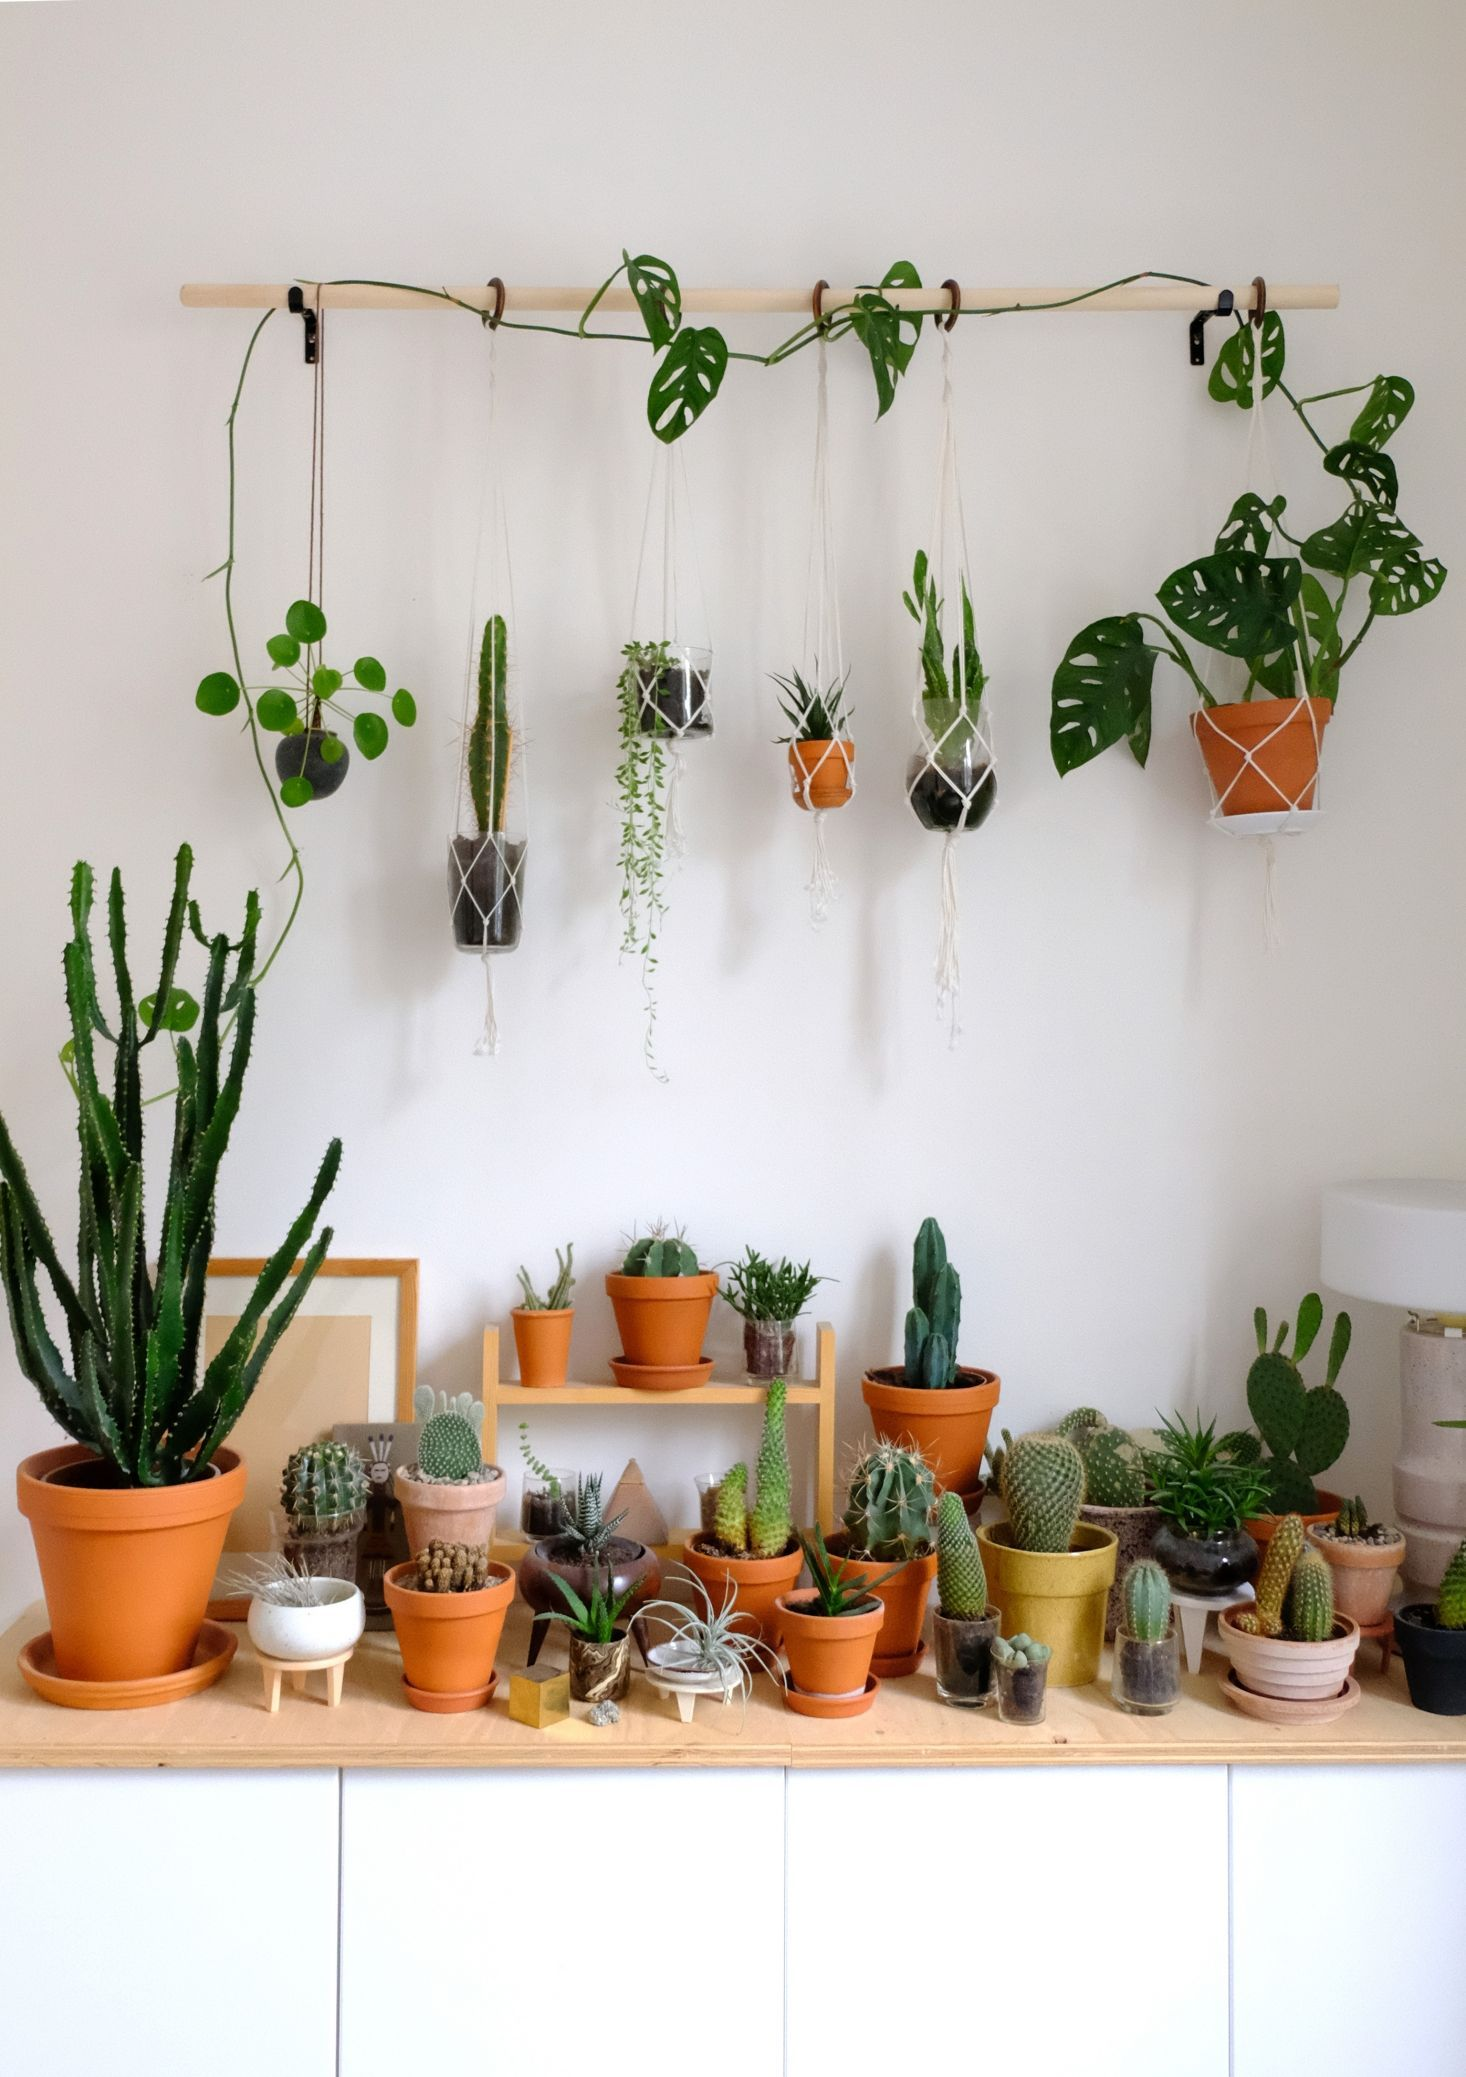 Diy Hanging Plant Wall With Macrame Planters Indoor 400 x 300